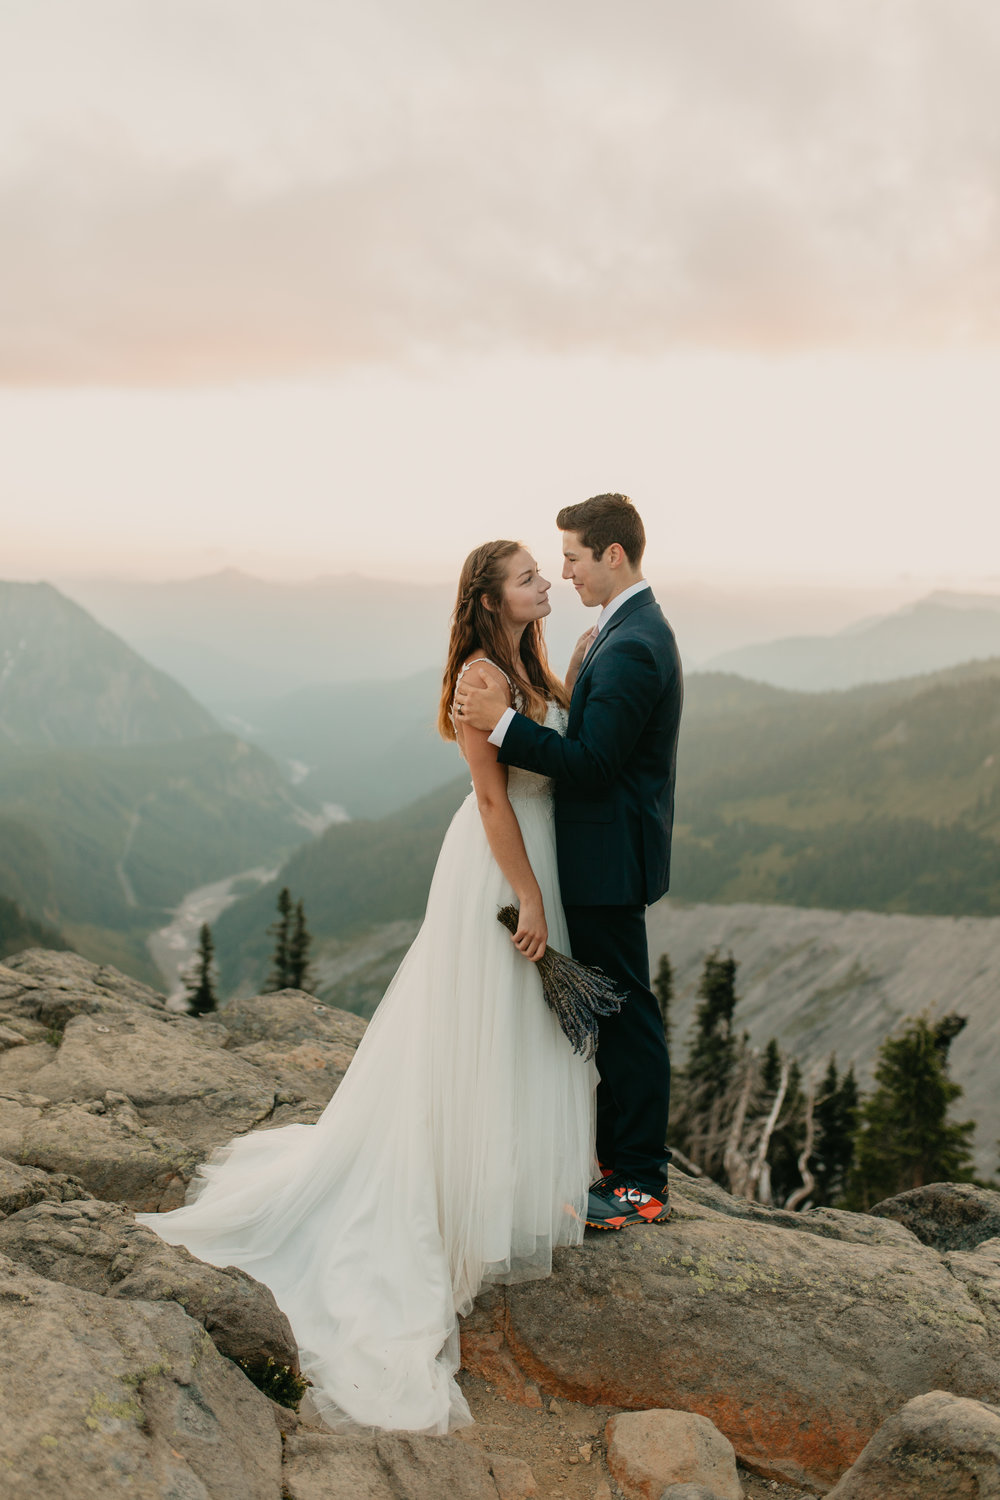 Nicole-Daacke-Photography-Mt-Rainier-elopement-photographer-washington-mountain-epic-wedding-photography-wildflowers-at-rainier-pine-tree-cloudy-summer-day-at-mountain-rainier-53.jpg